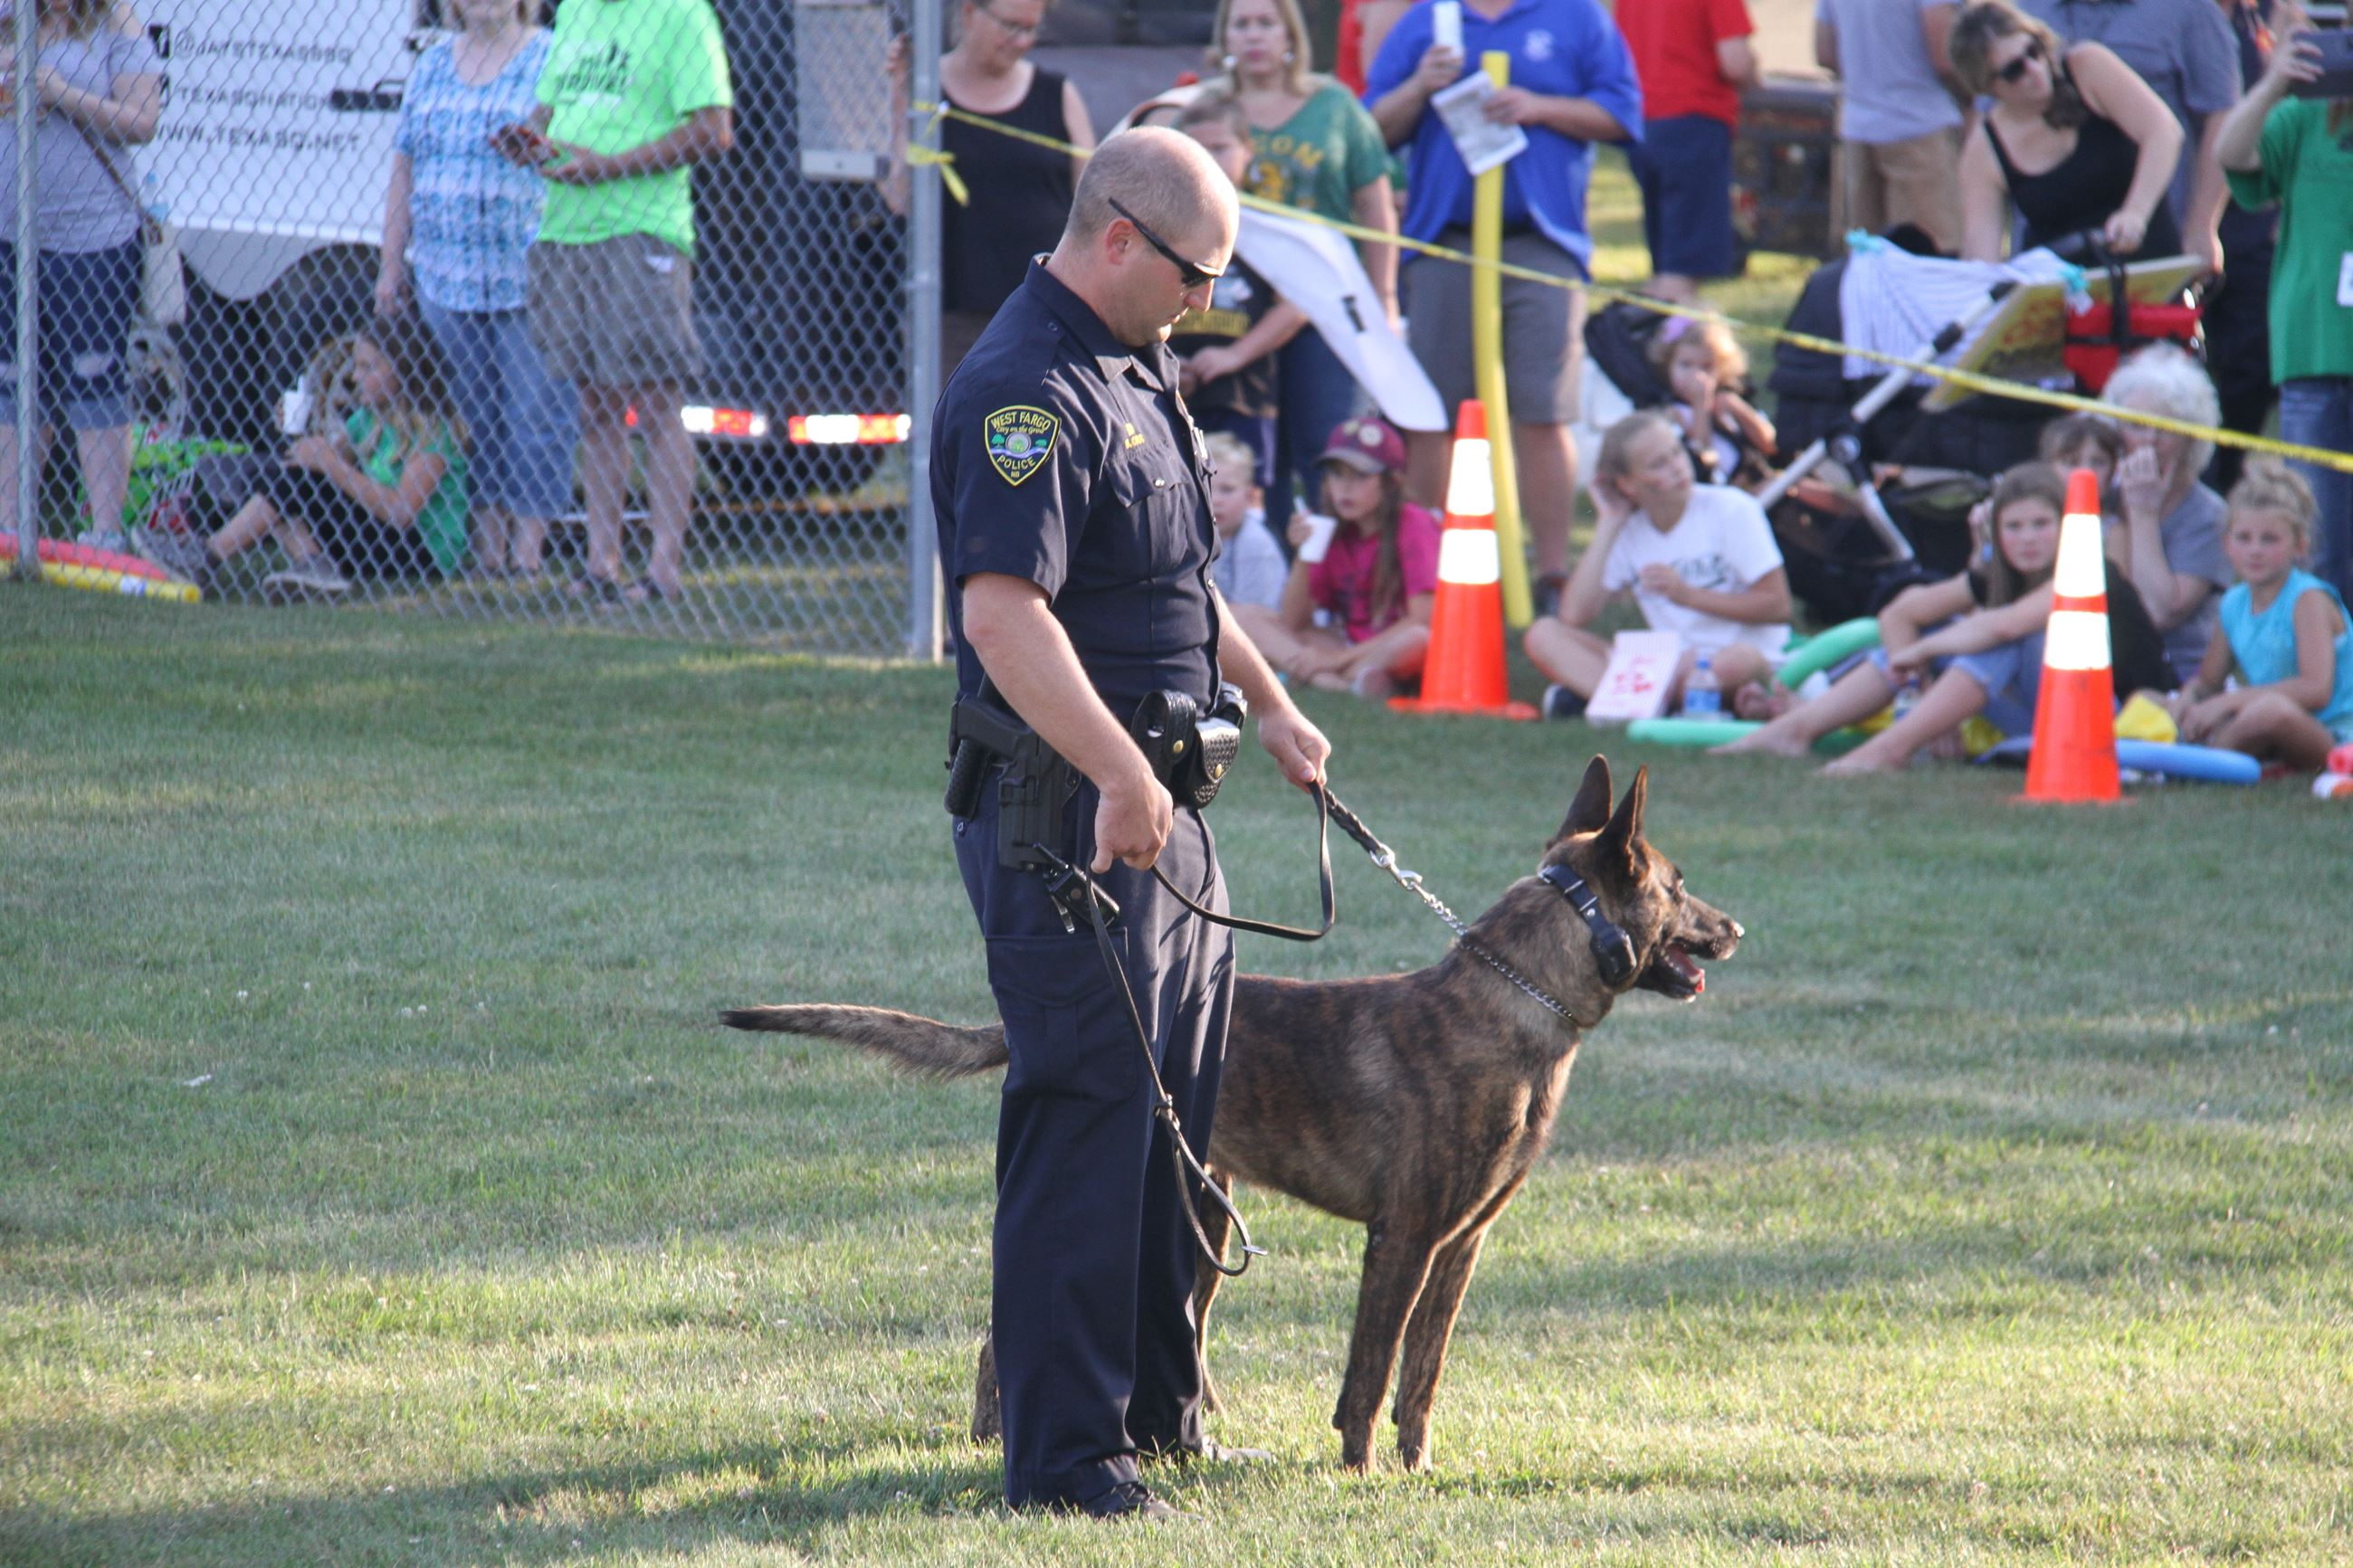 Officer Orr and K9 ToSti demonstrate how they work as a team